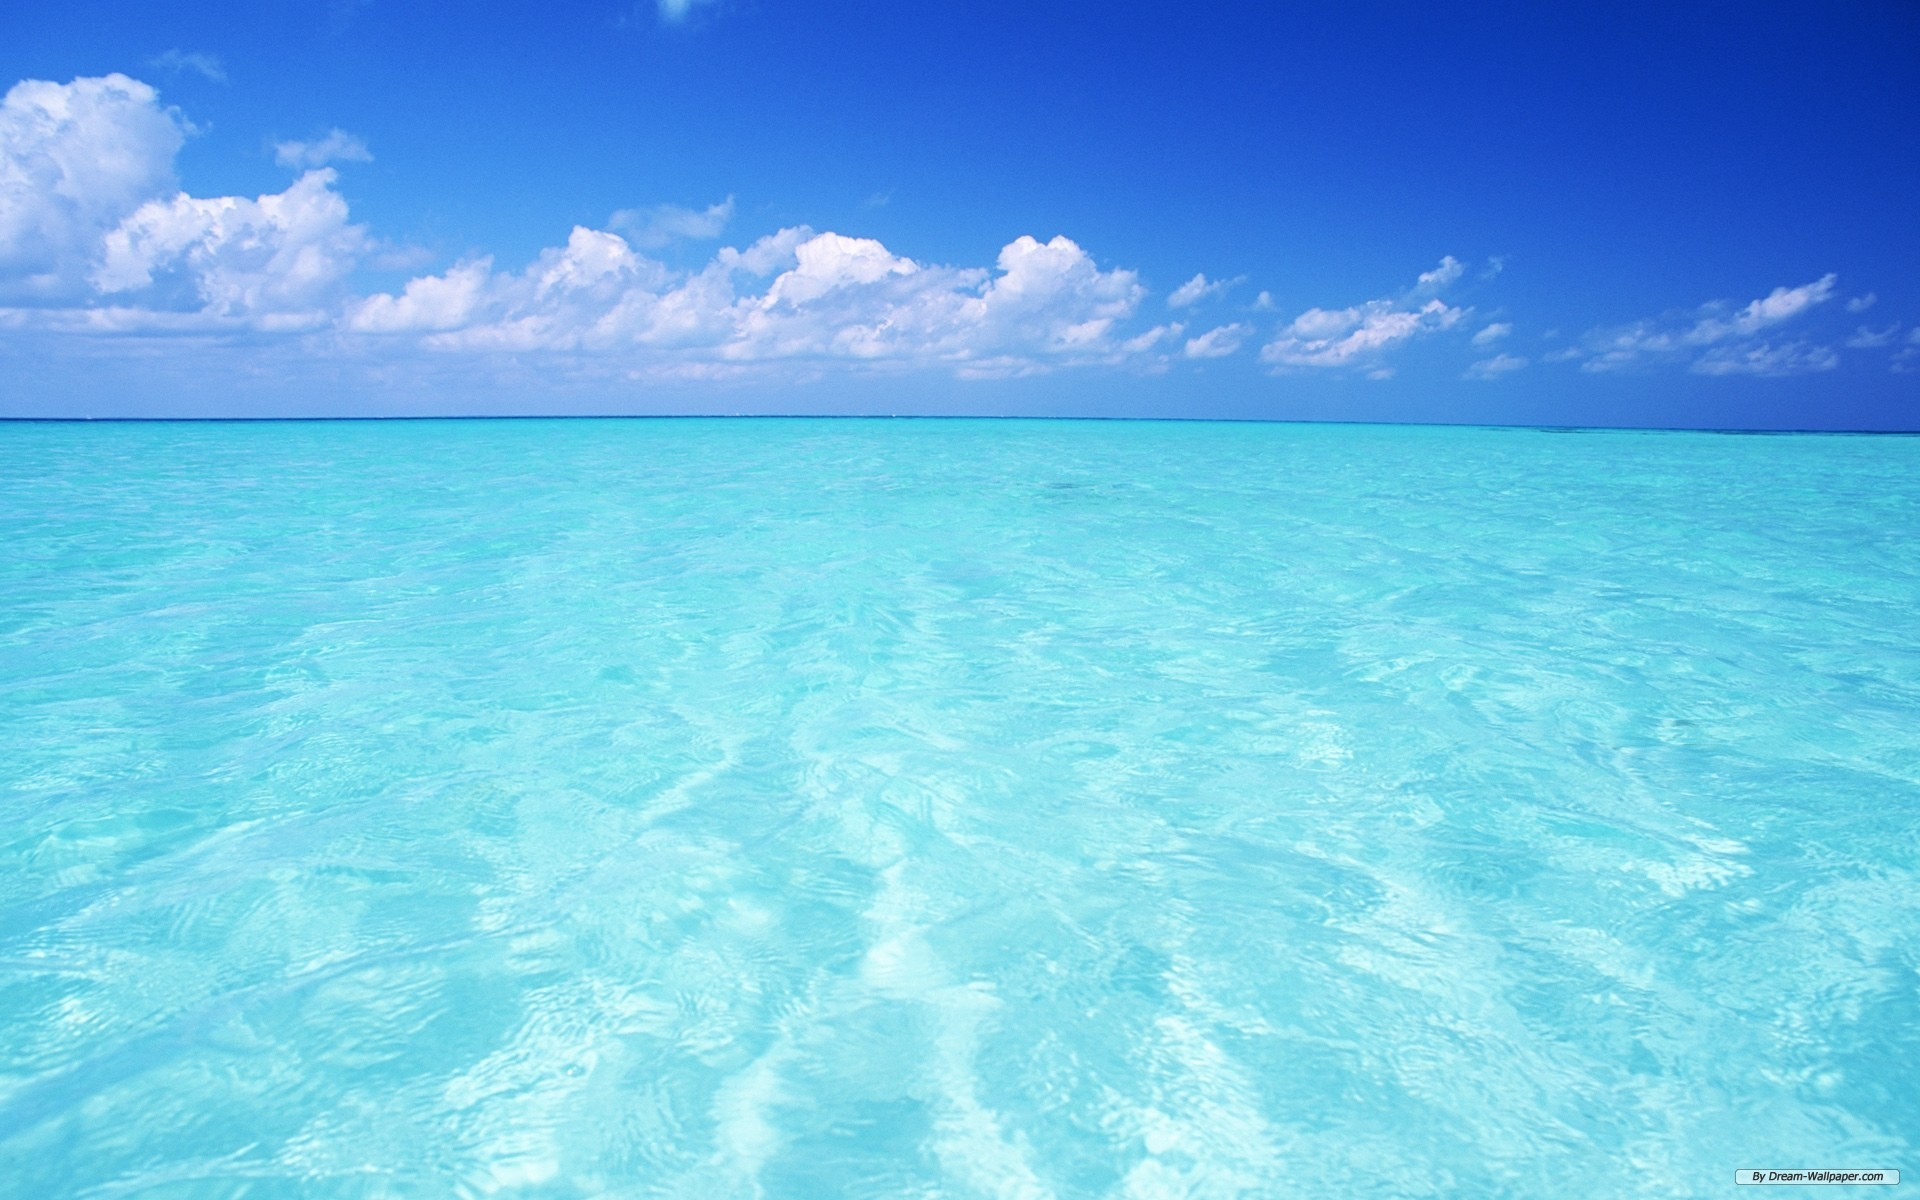 1920x1200 wallpaper, nature, clear, sky, water, blue, background